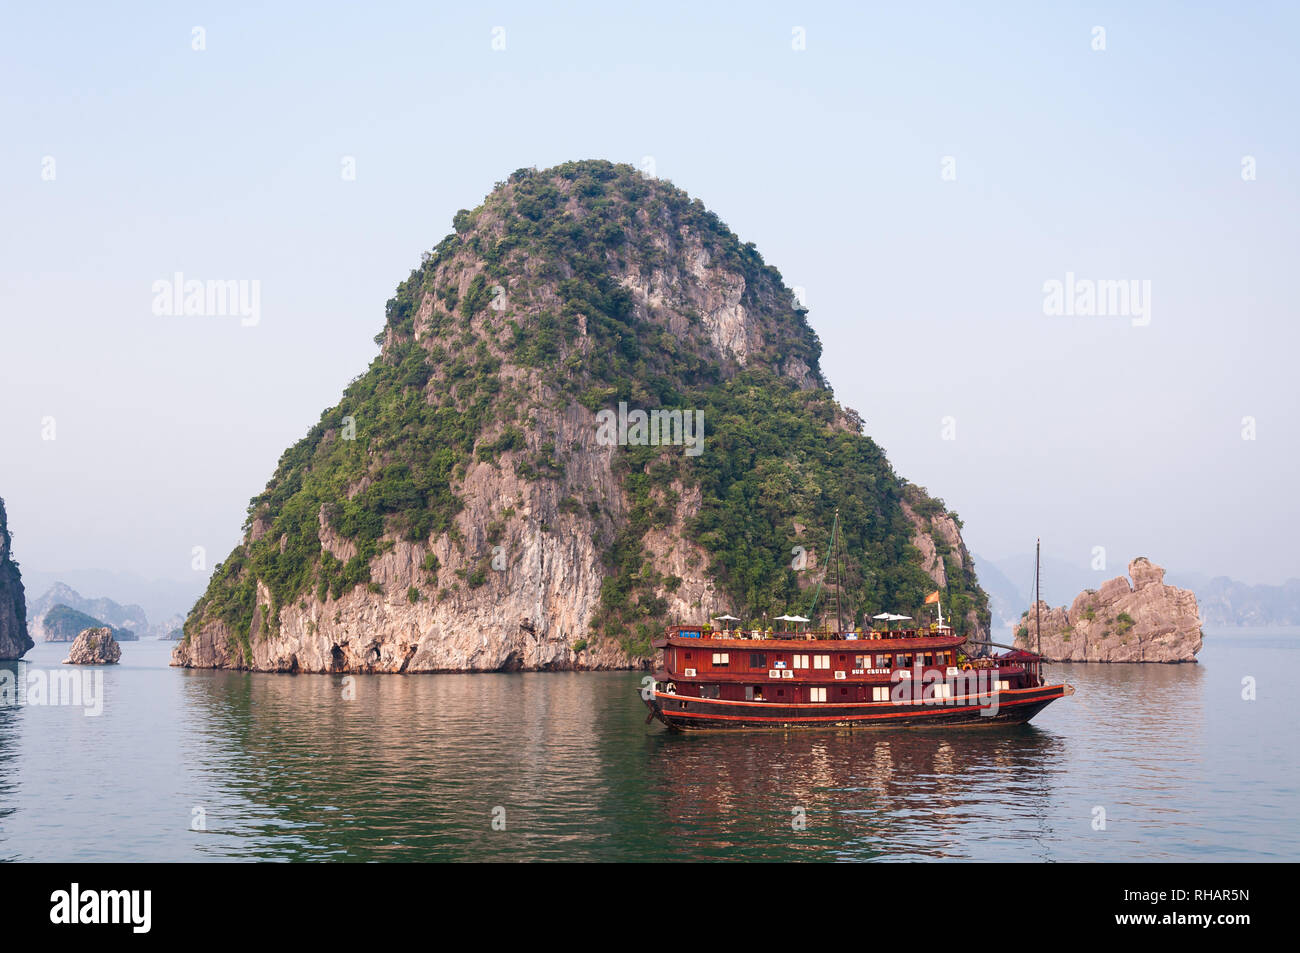 A wooden tourist junk boat anchored by a limestone karst island in early morning light, Halong Bay, Vietnam - Stock Image